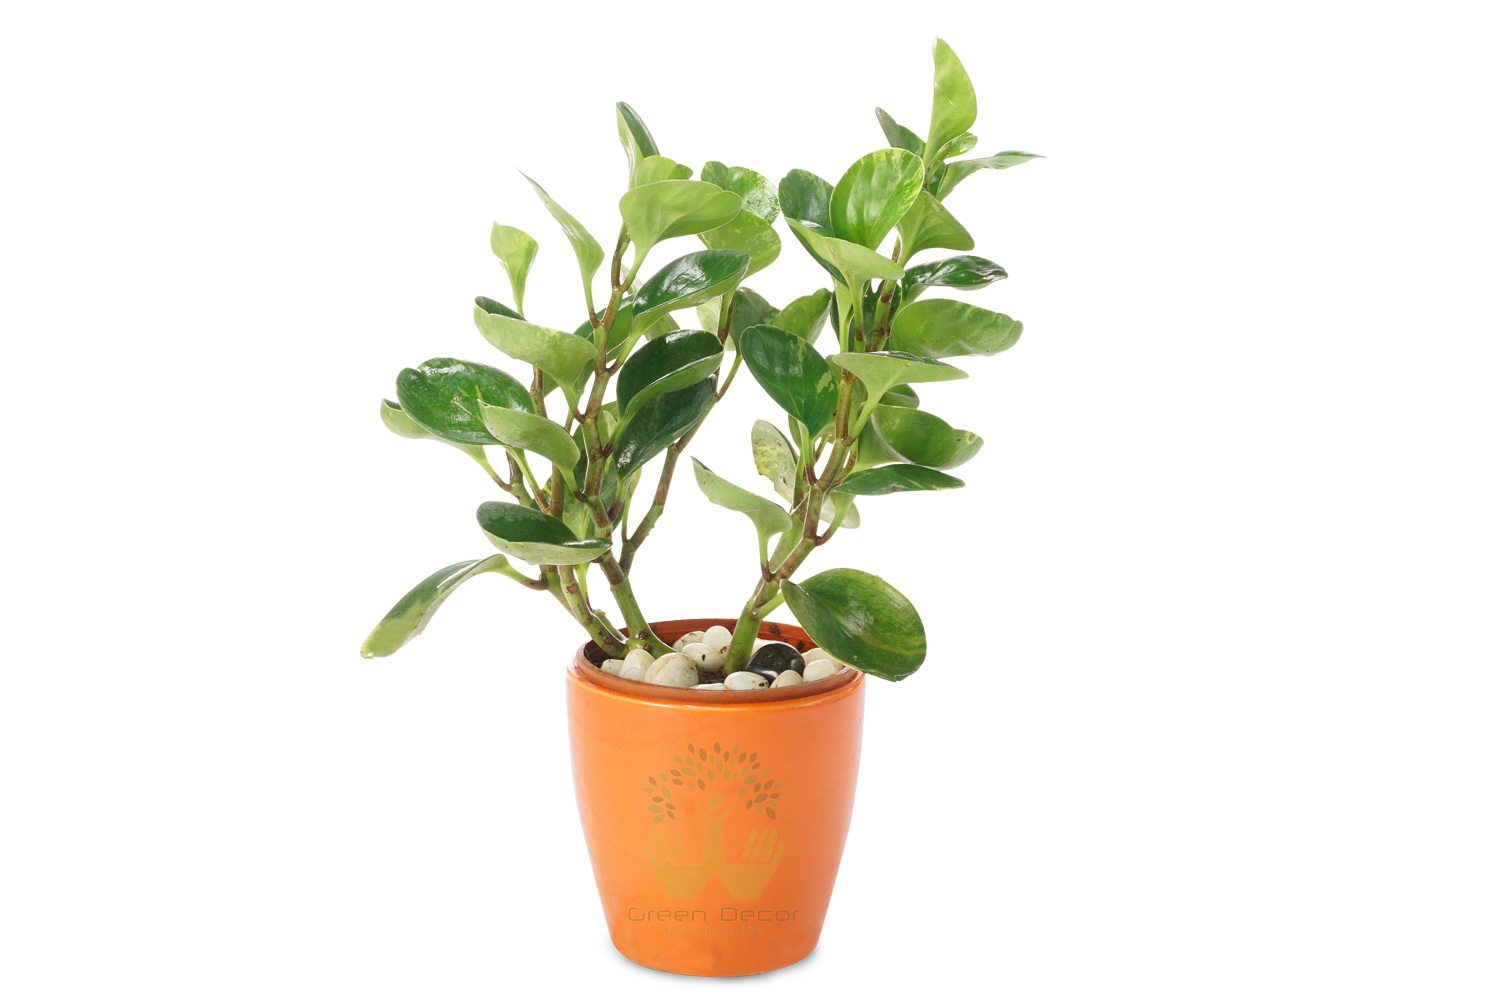 Buy Peperomia obra Plant Front View, White Pots and Seeds in Delhi NCR by the best online nursery shop Greendecor.